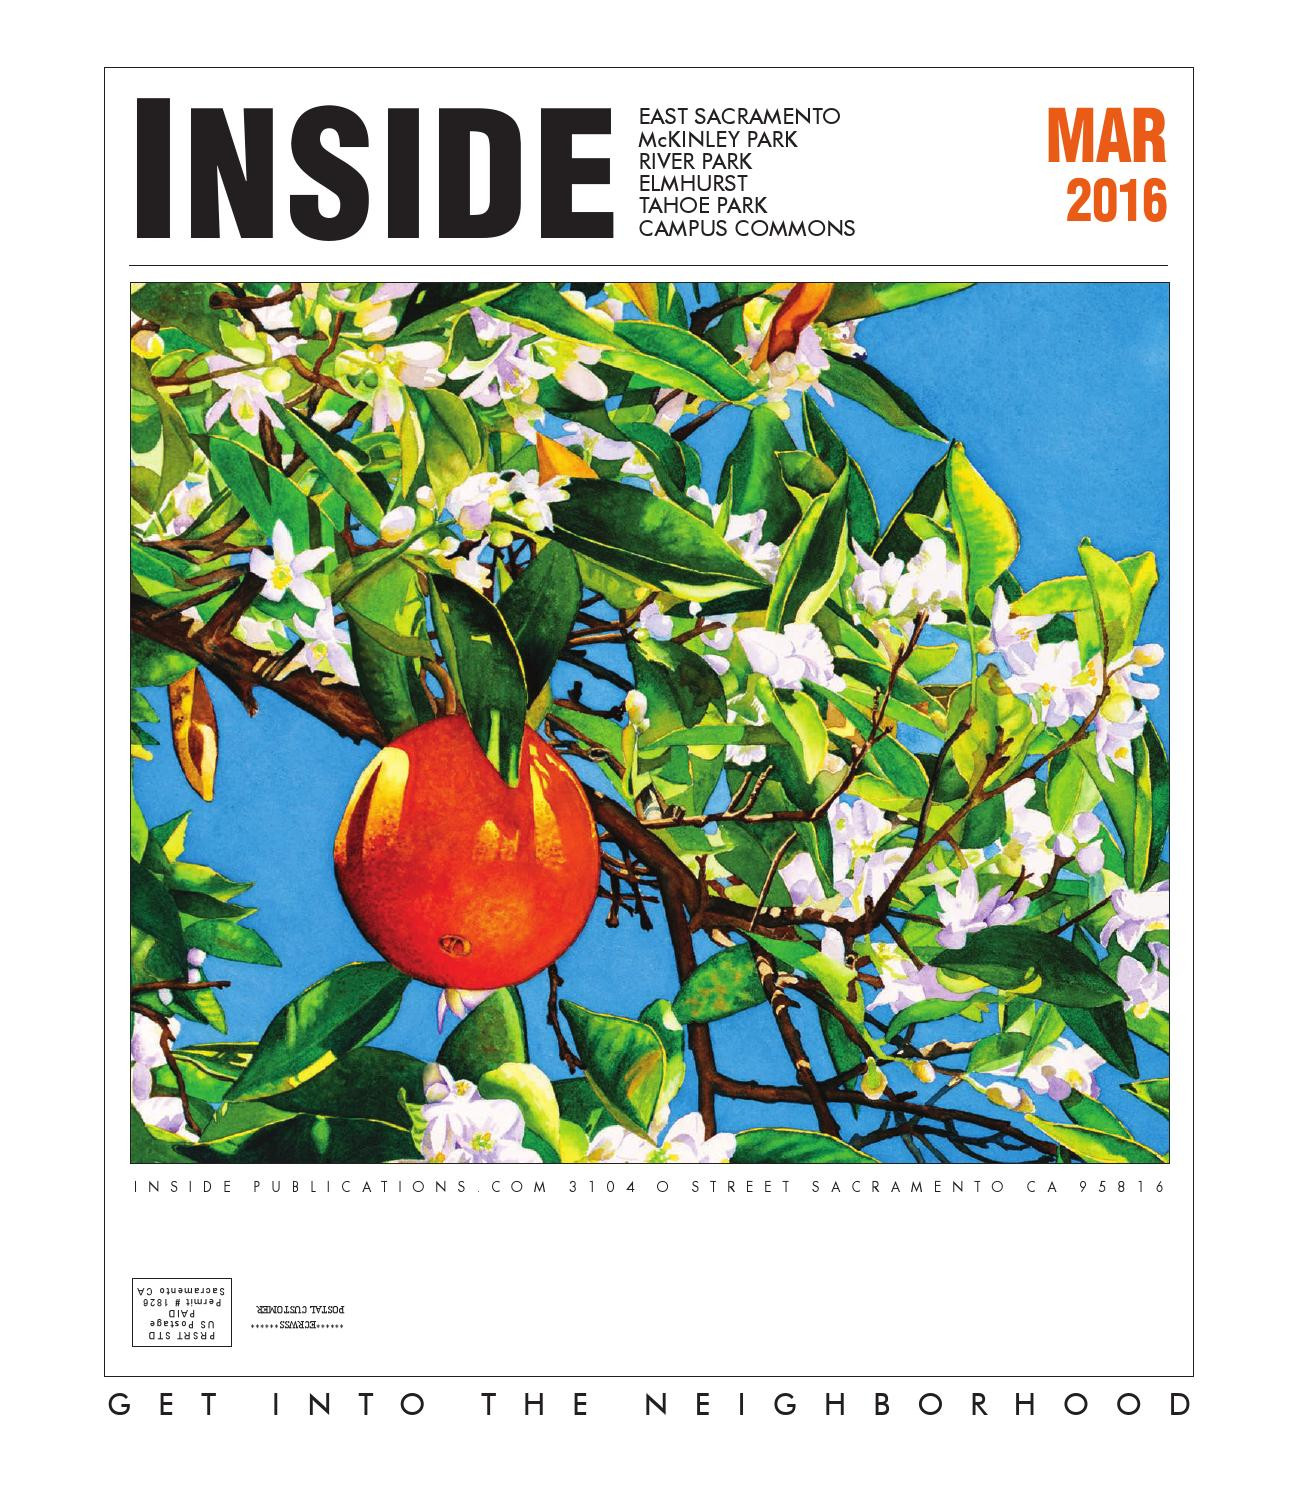 roseville usa vase value of inside east sacramento march 2016 by inside publications issuu pertaining to page 1